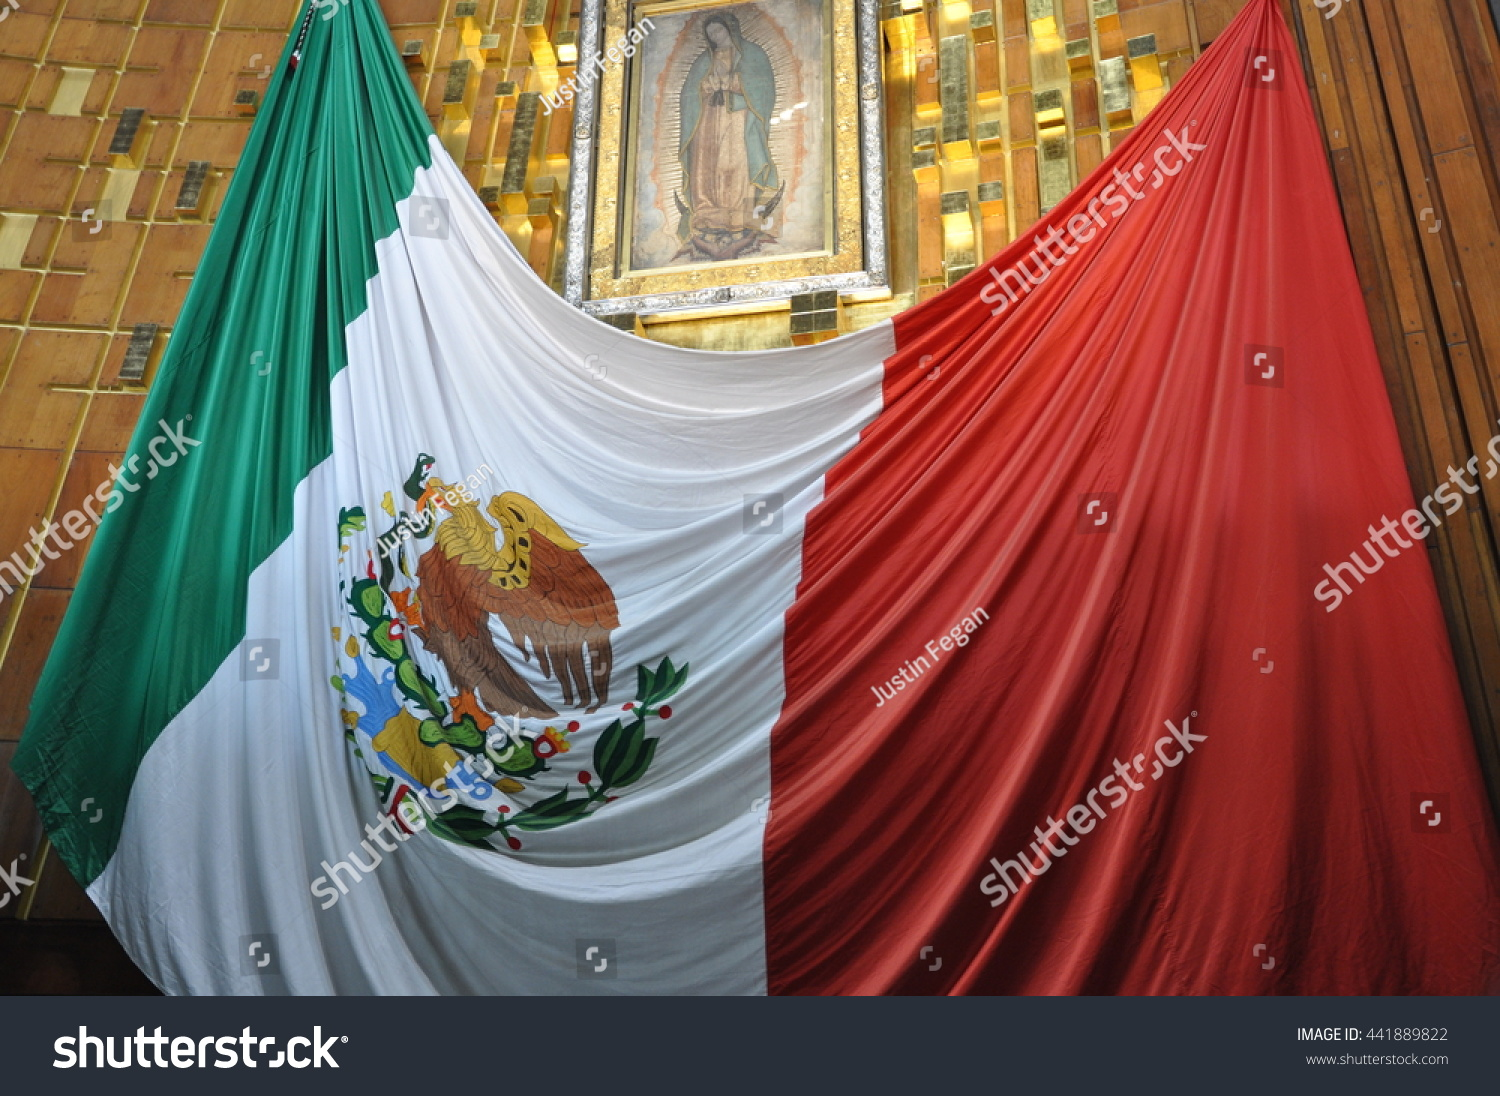 January 2016 Basilica of Our Lady of Guadalupe Mexico City The Mexican Flag hanging underneath the shrine to Guadalupe inside the basilica